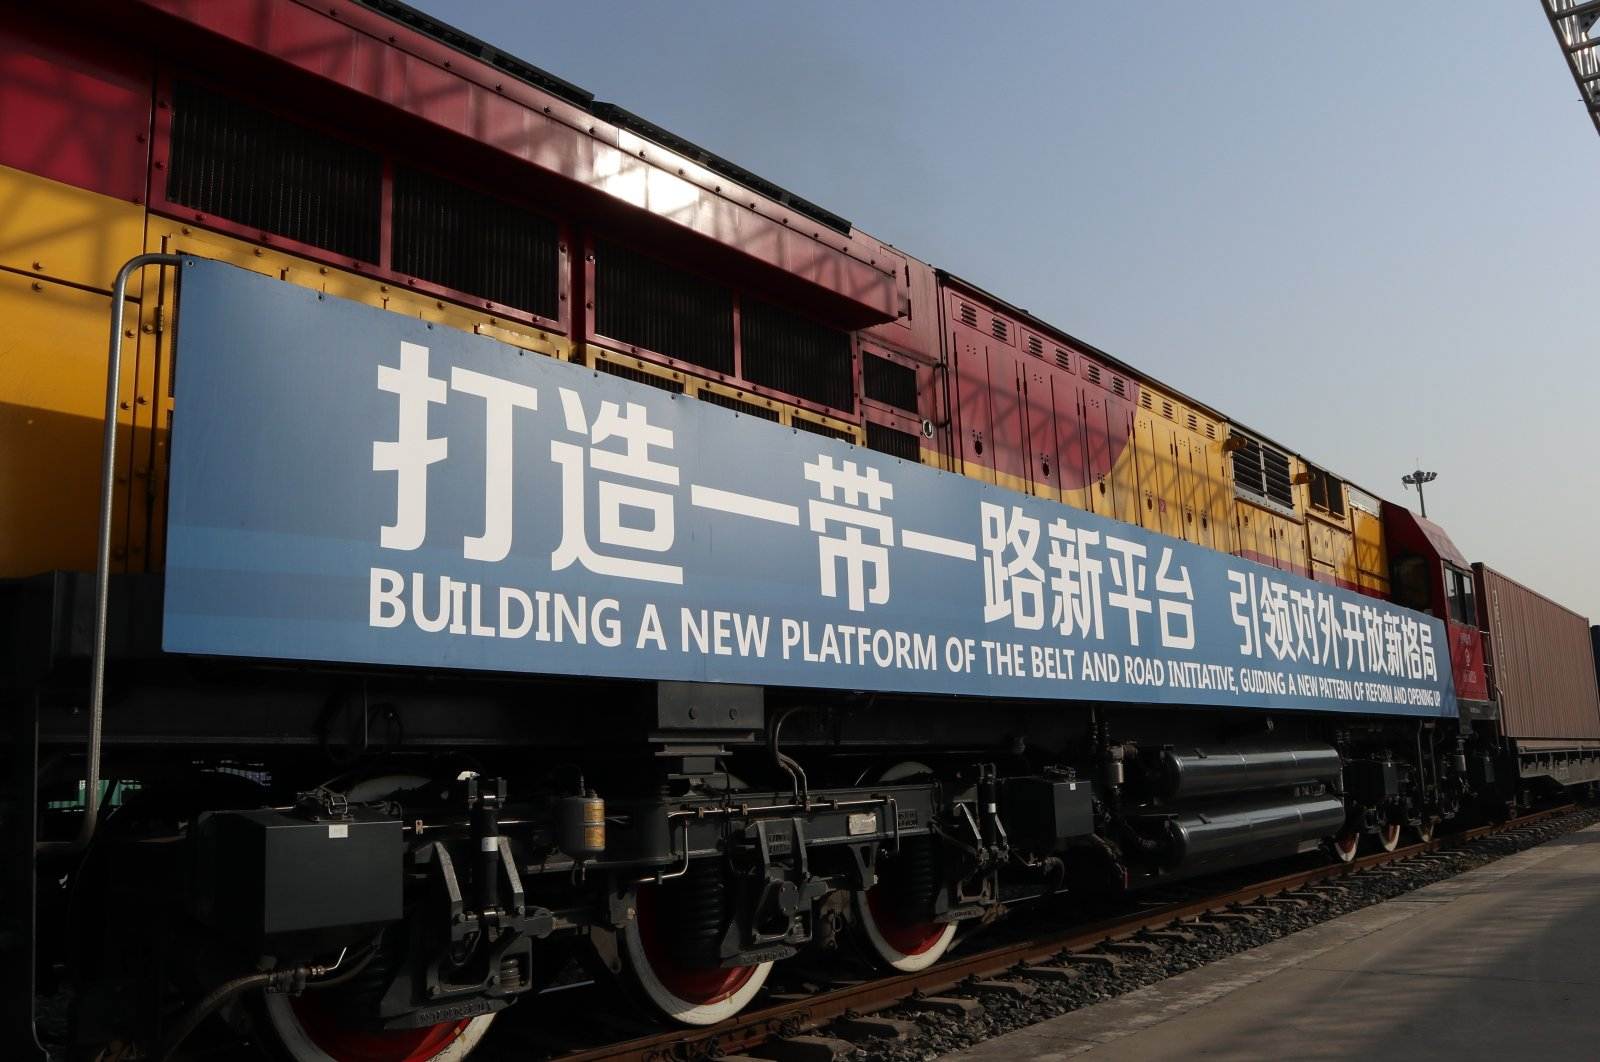 The Turkish export train completes its journey from Turkey to China in the city of Xi'an, China, on Dec. 19, 2020. (IHA Photo)